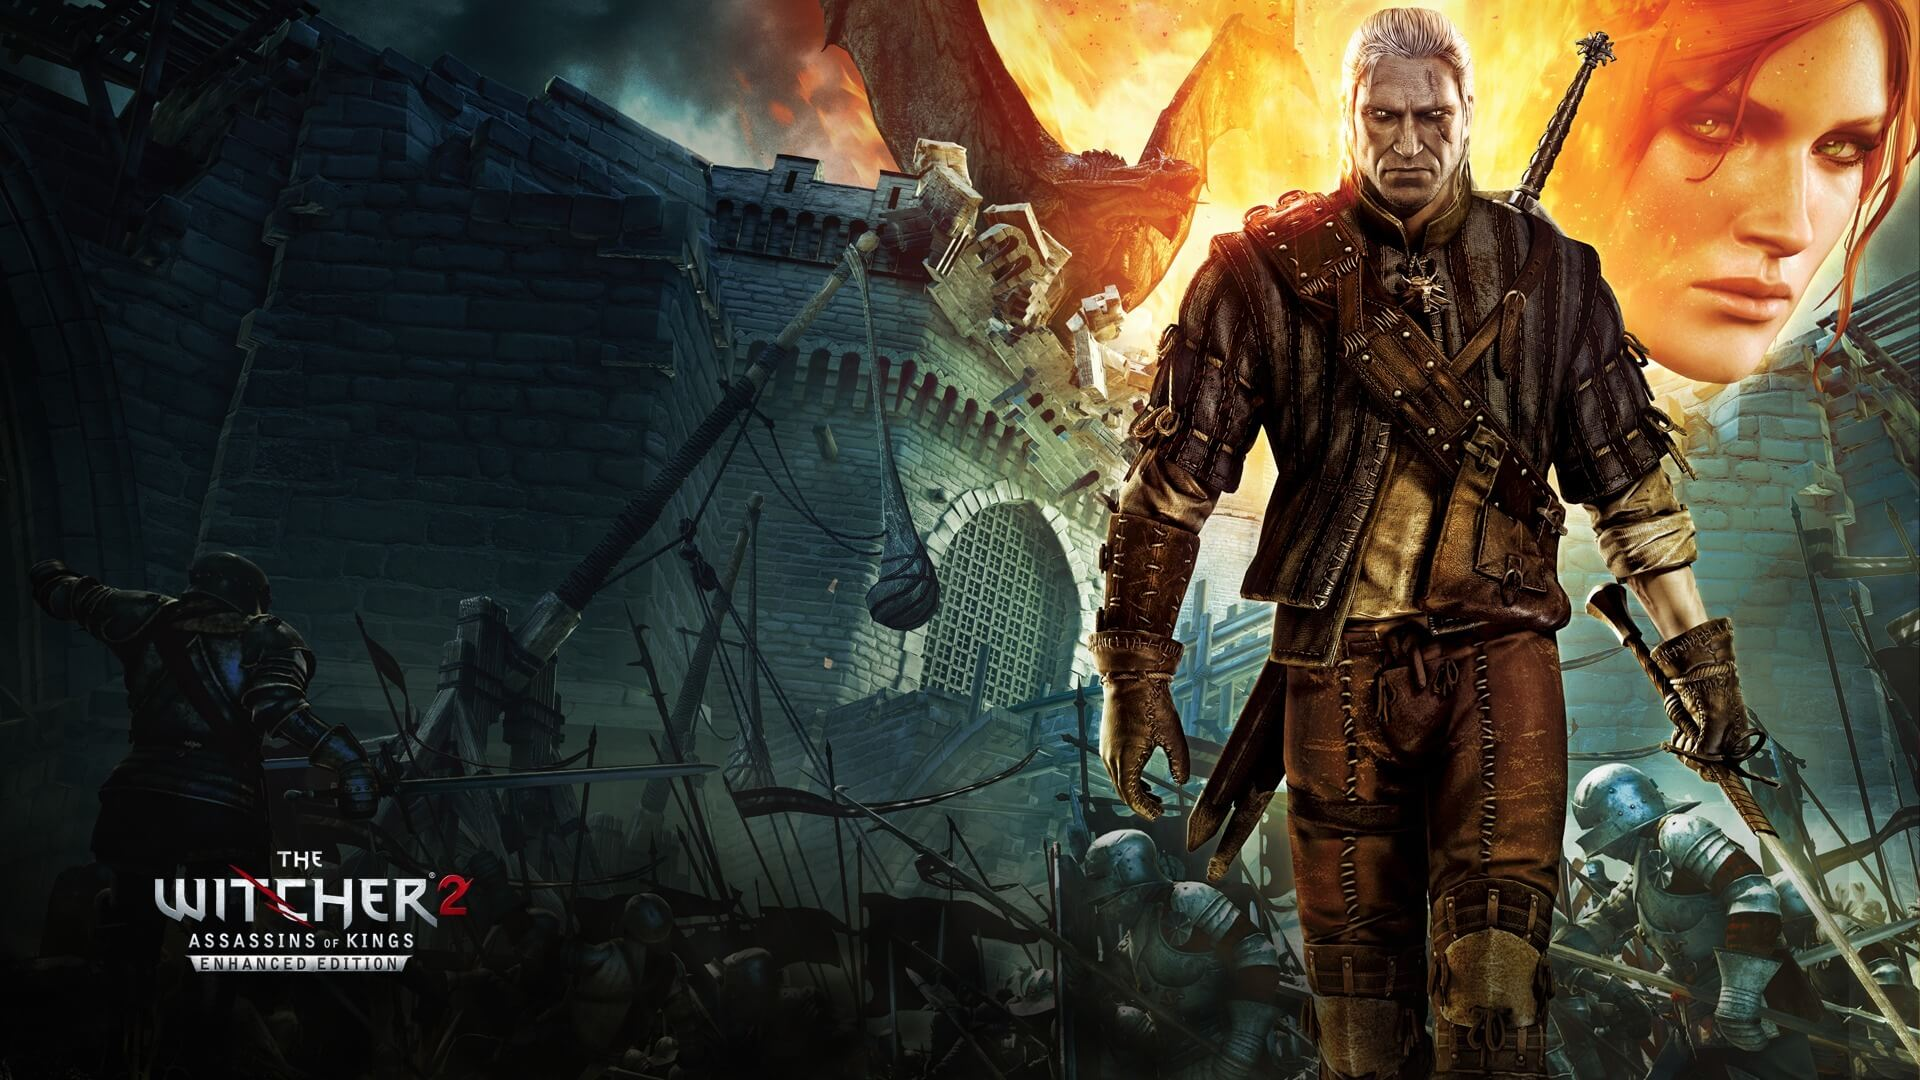 The Witcher 2 Assassins of Kings Cheats and Trainers - Video Games